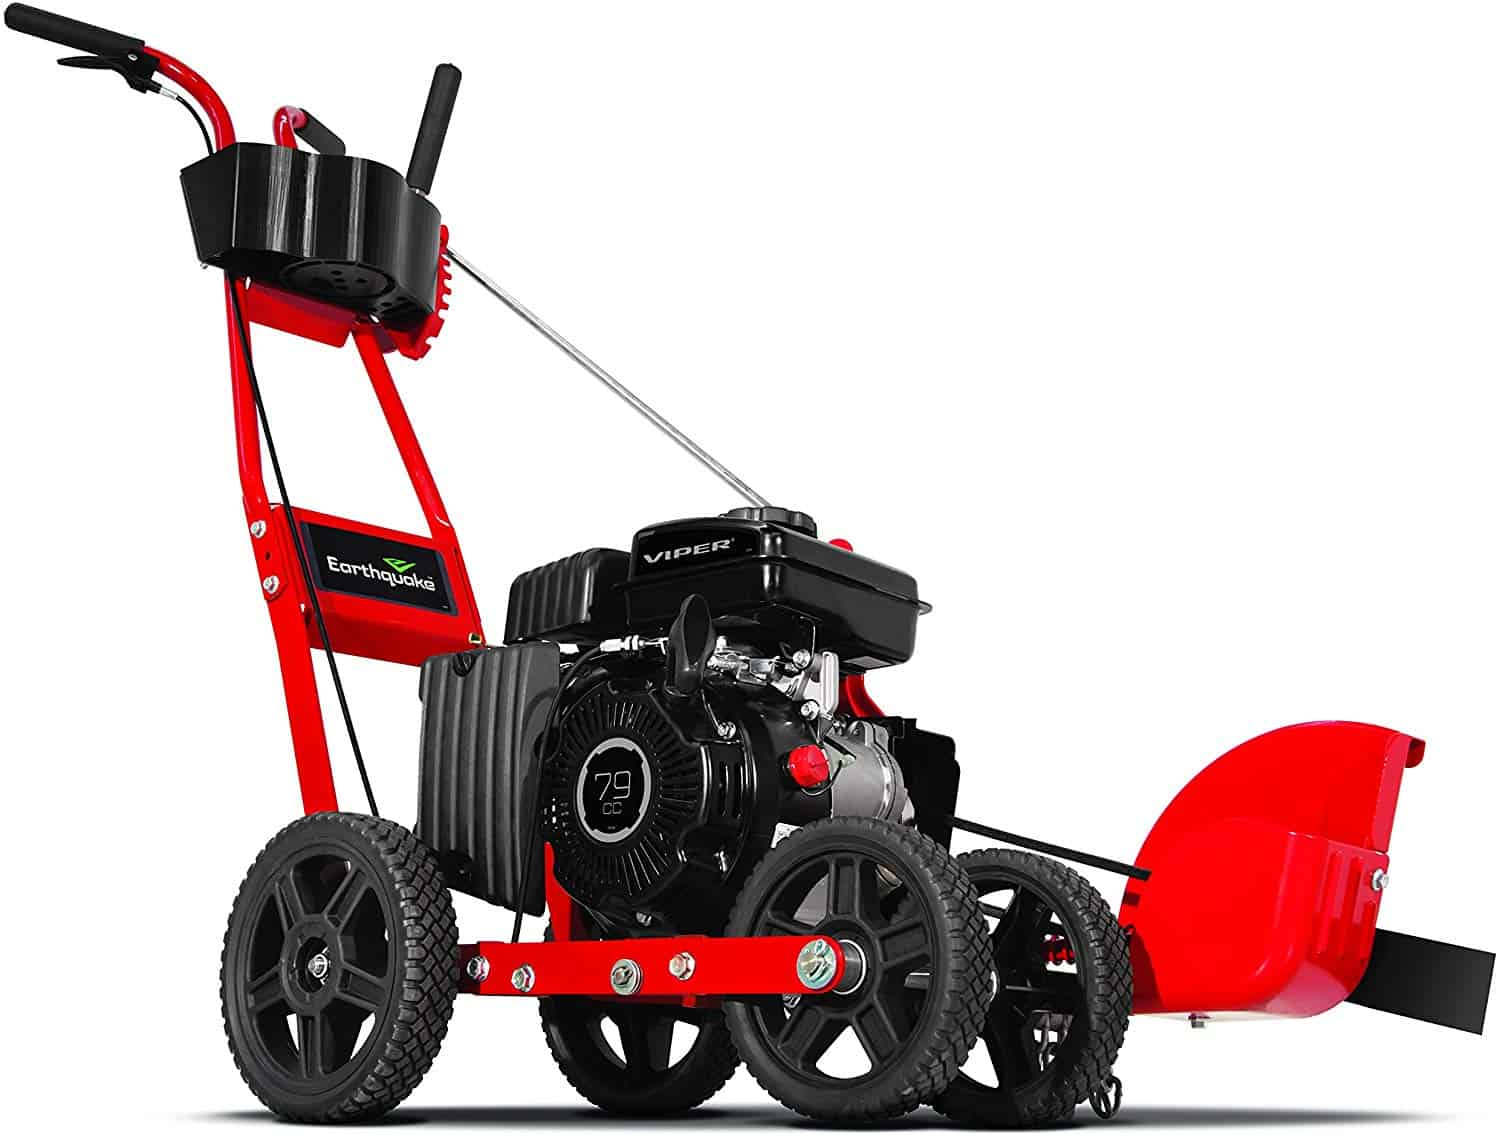 Earthquake-23275-Walk-Behind-Landscape-and-Lawn-Edger-with-79cc-4-Cycle-Engine